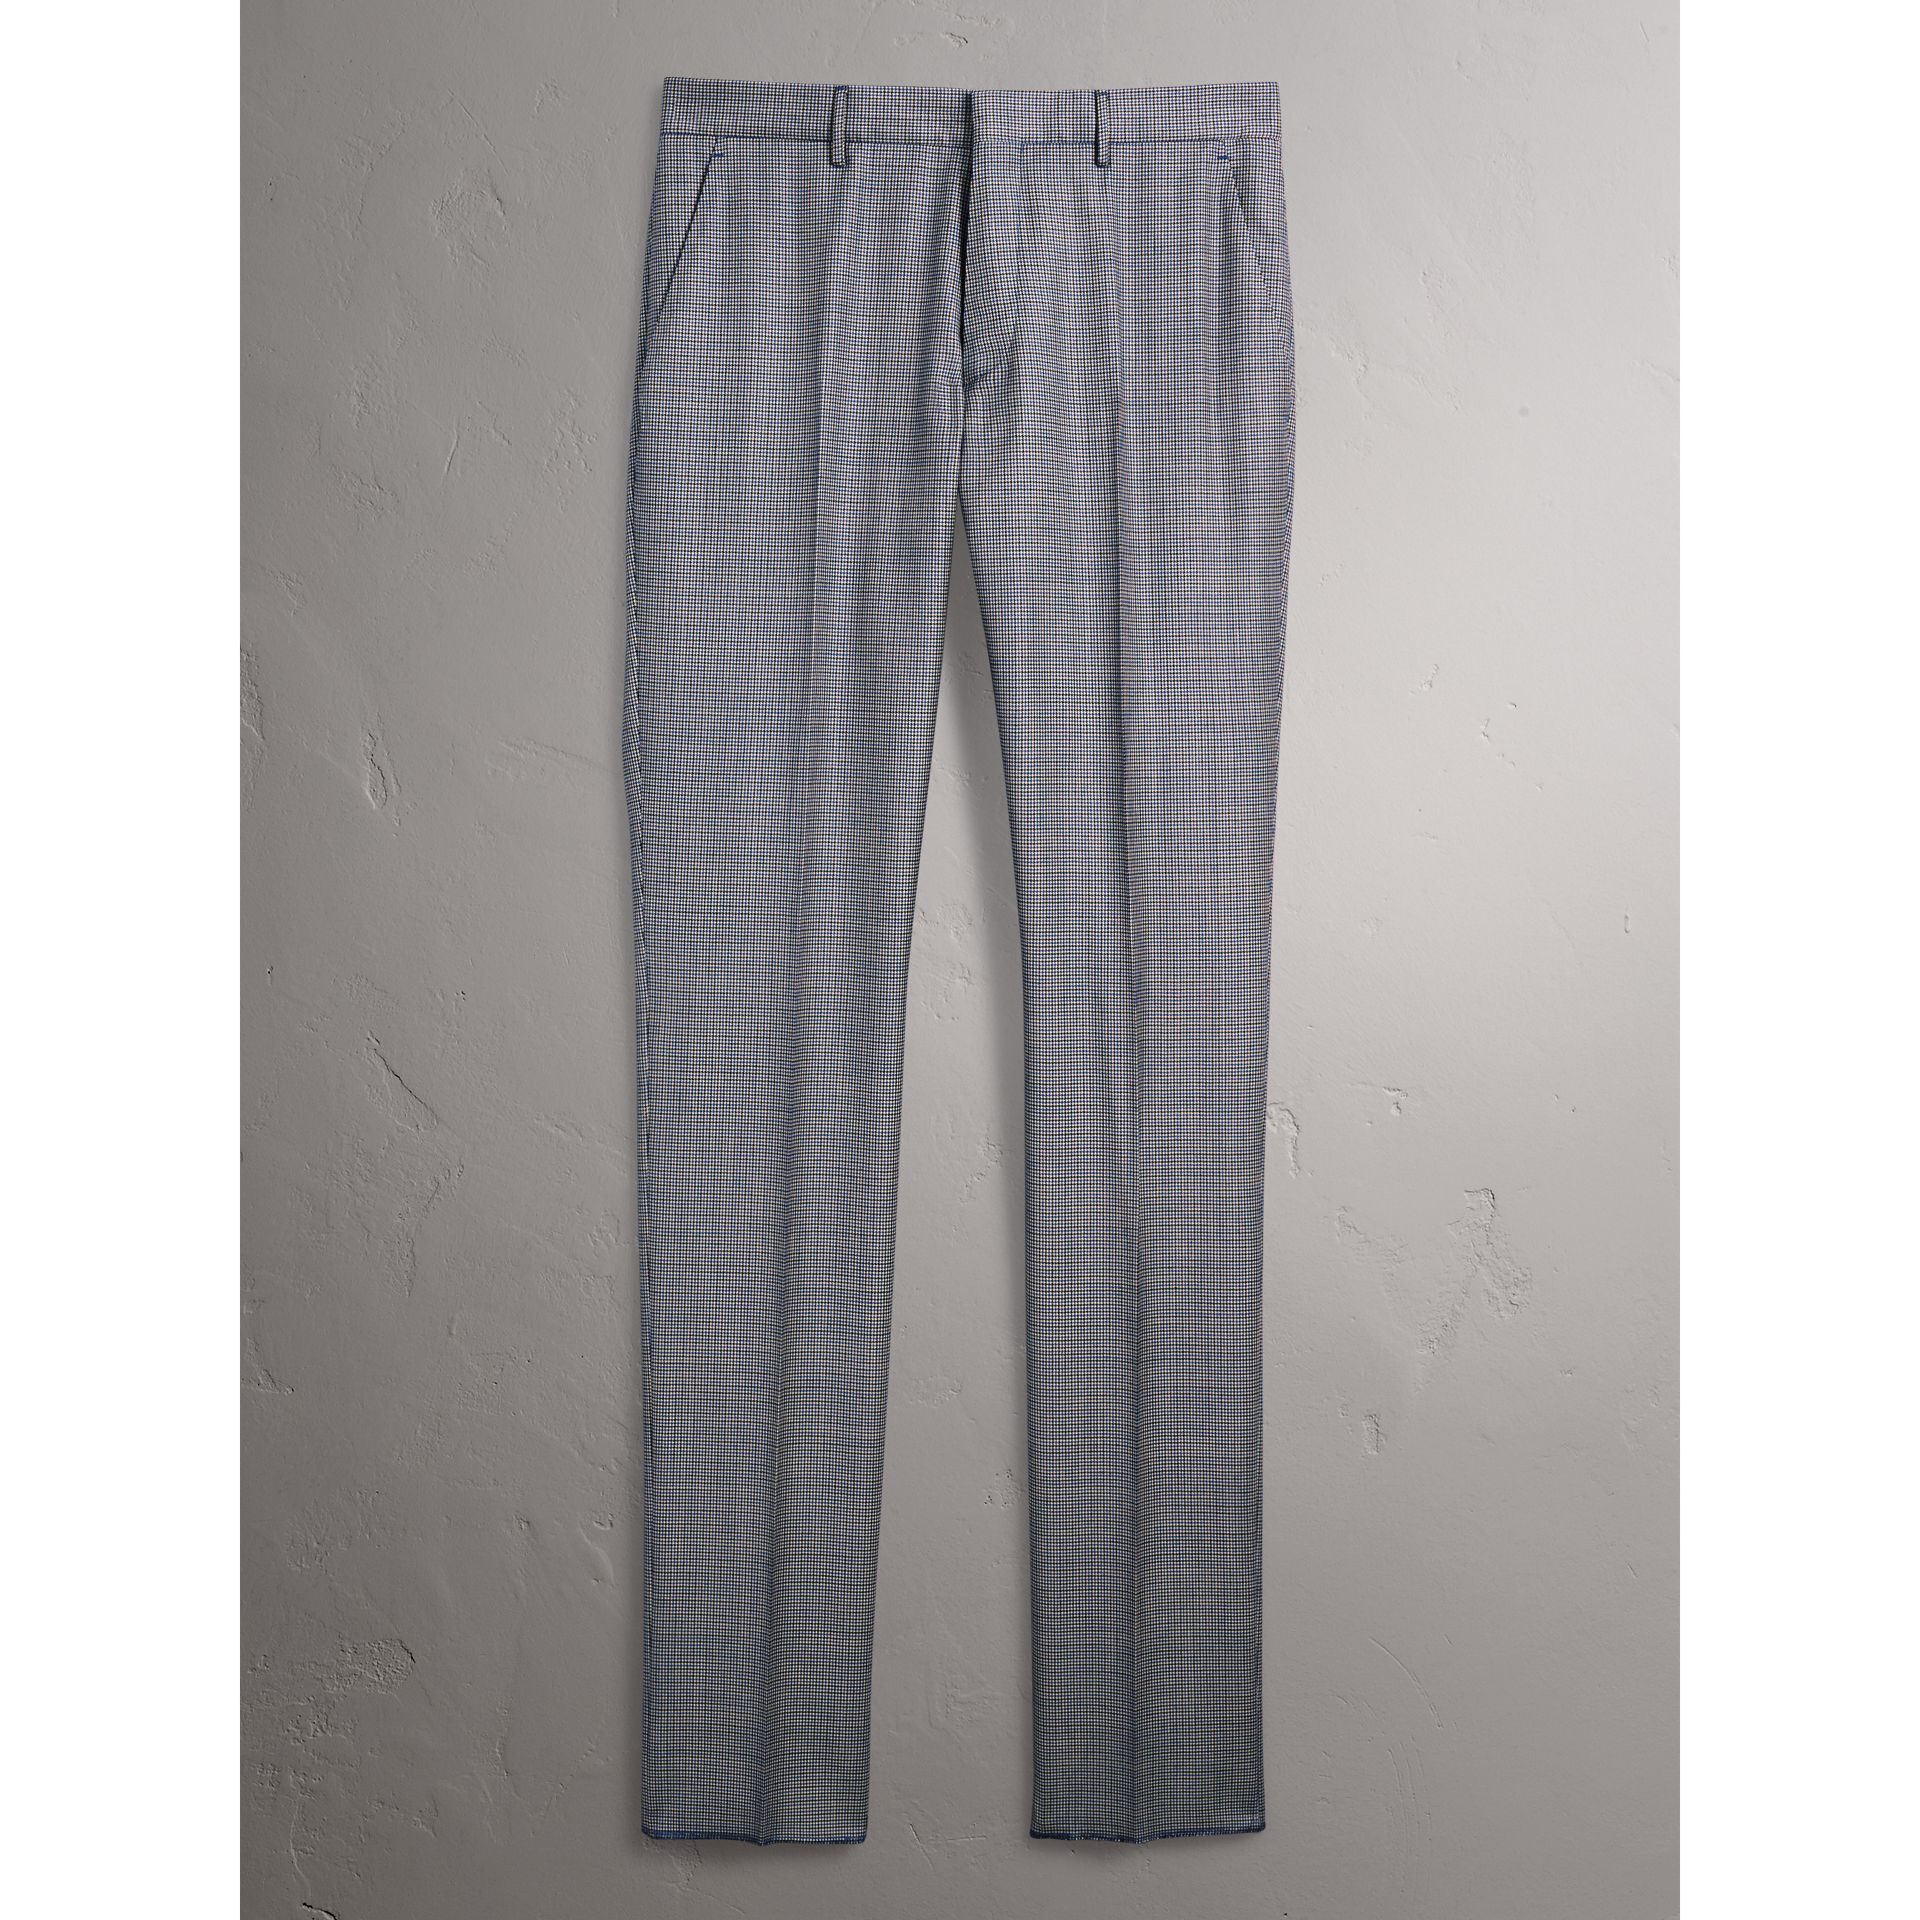 Slim Fit Houndstooth Wool Trousers in Light Blue - Men | Burberry United Kingdom - gallery image 4